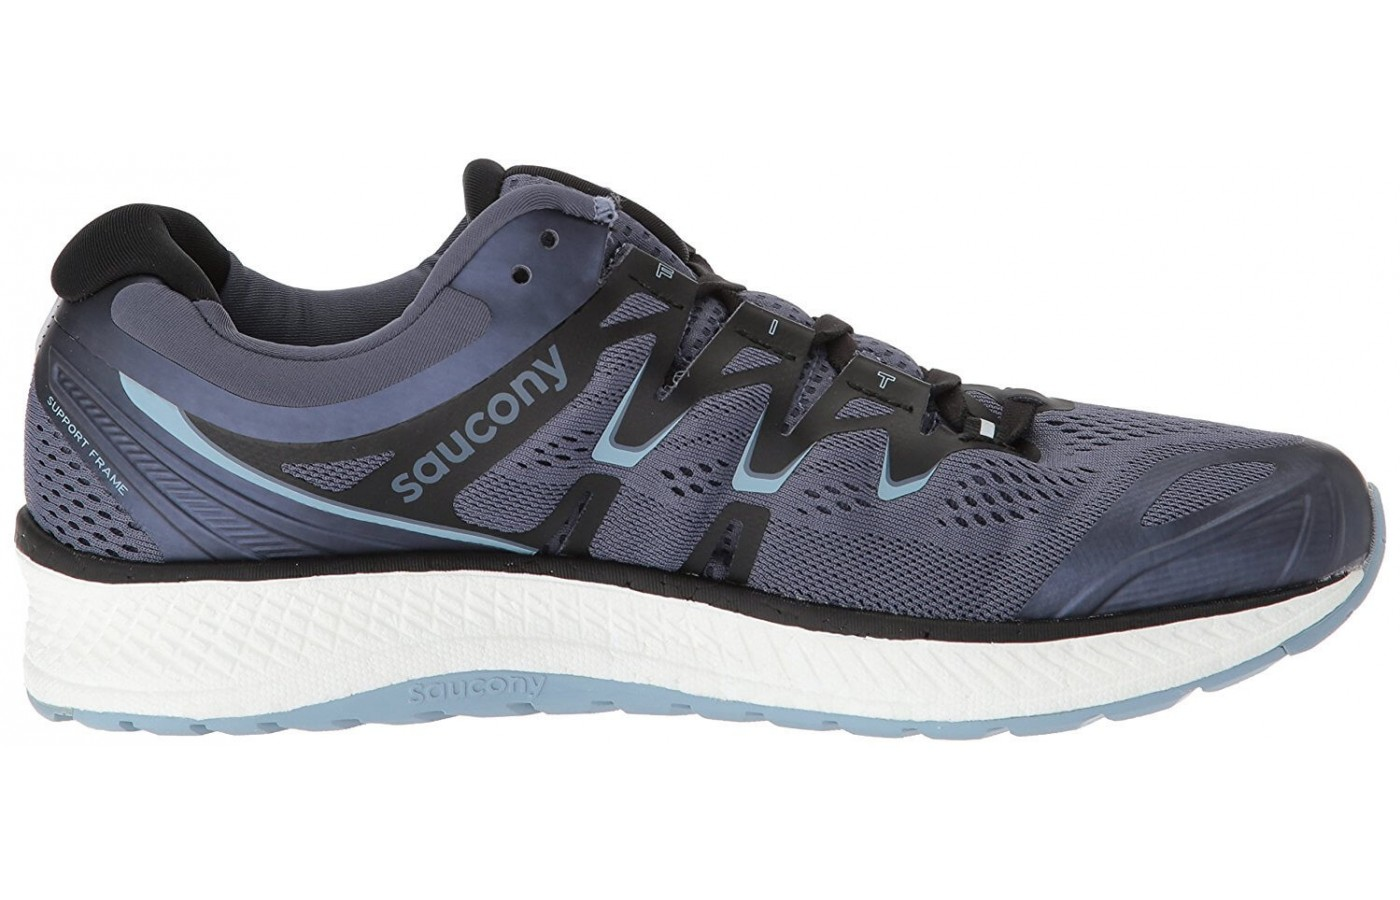 The Saucony Triump ISO 4 is best suited for runners who like plush cushioning.